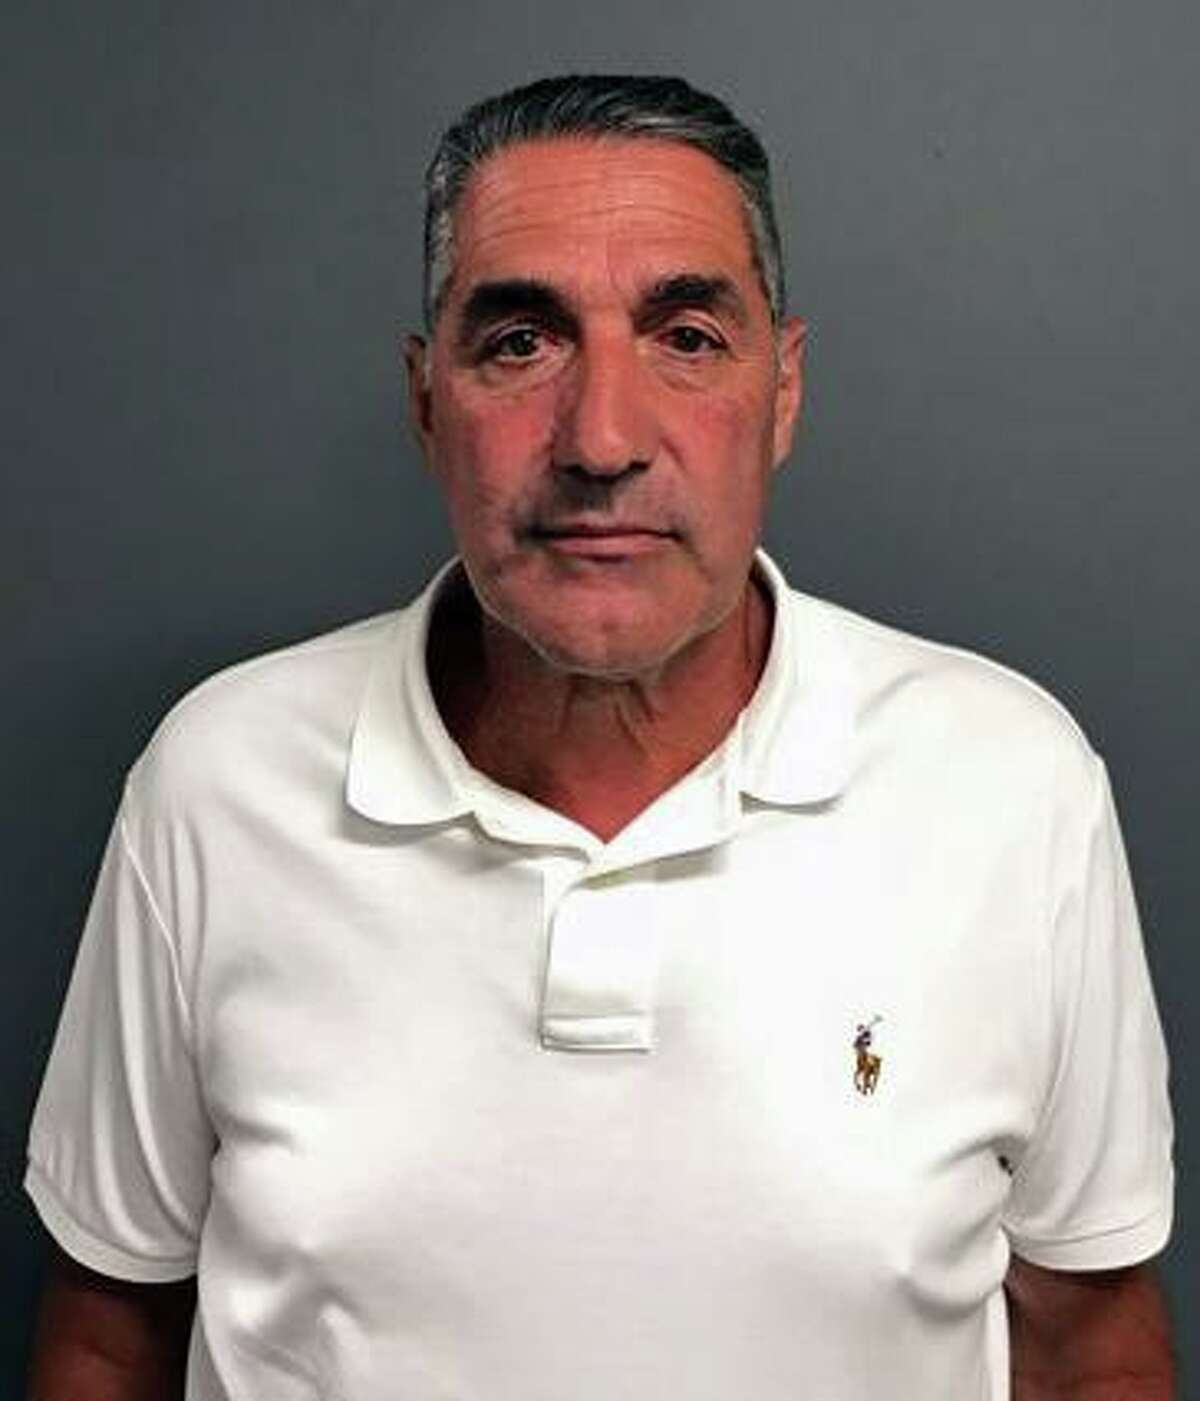 Gary Morrone, 65, of Oakville, Conn., was charged on Tuesday, June 19, 2018, with first-degree reckless operation of a vessel, failure to help a collision victim and failure to immediately notify law enforcement of injury.